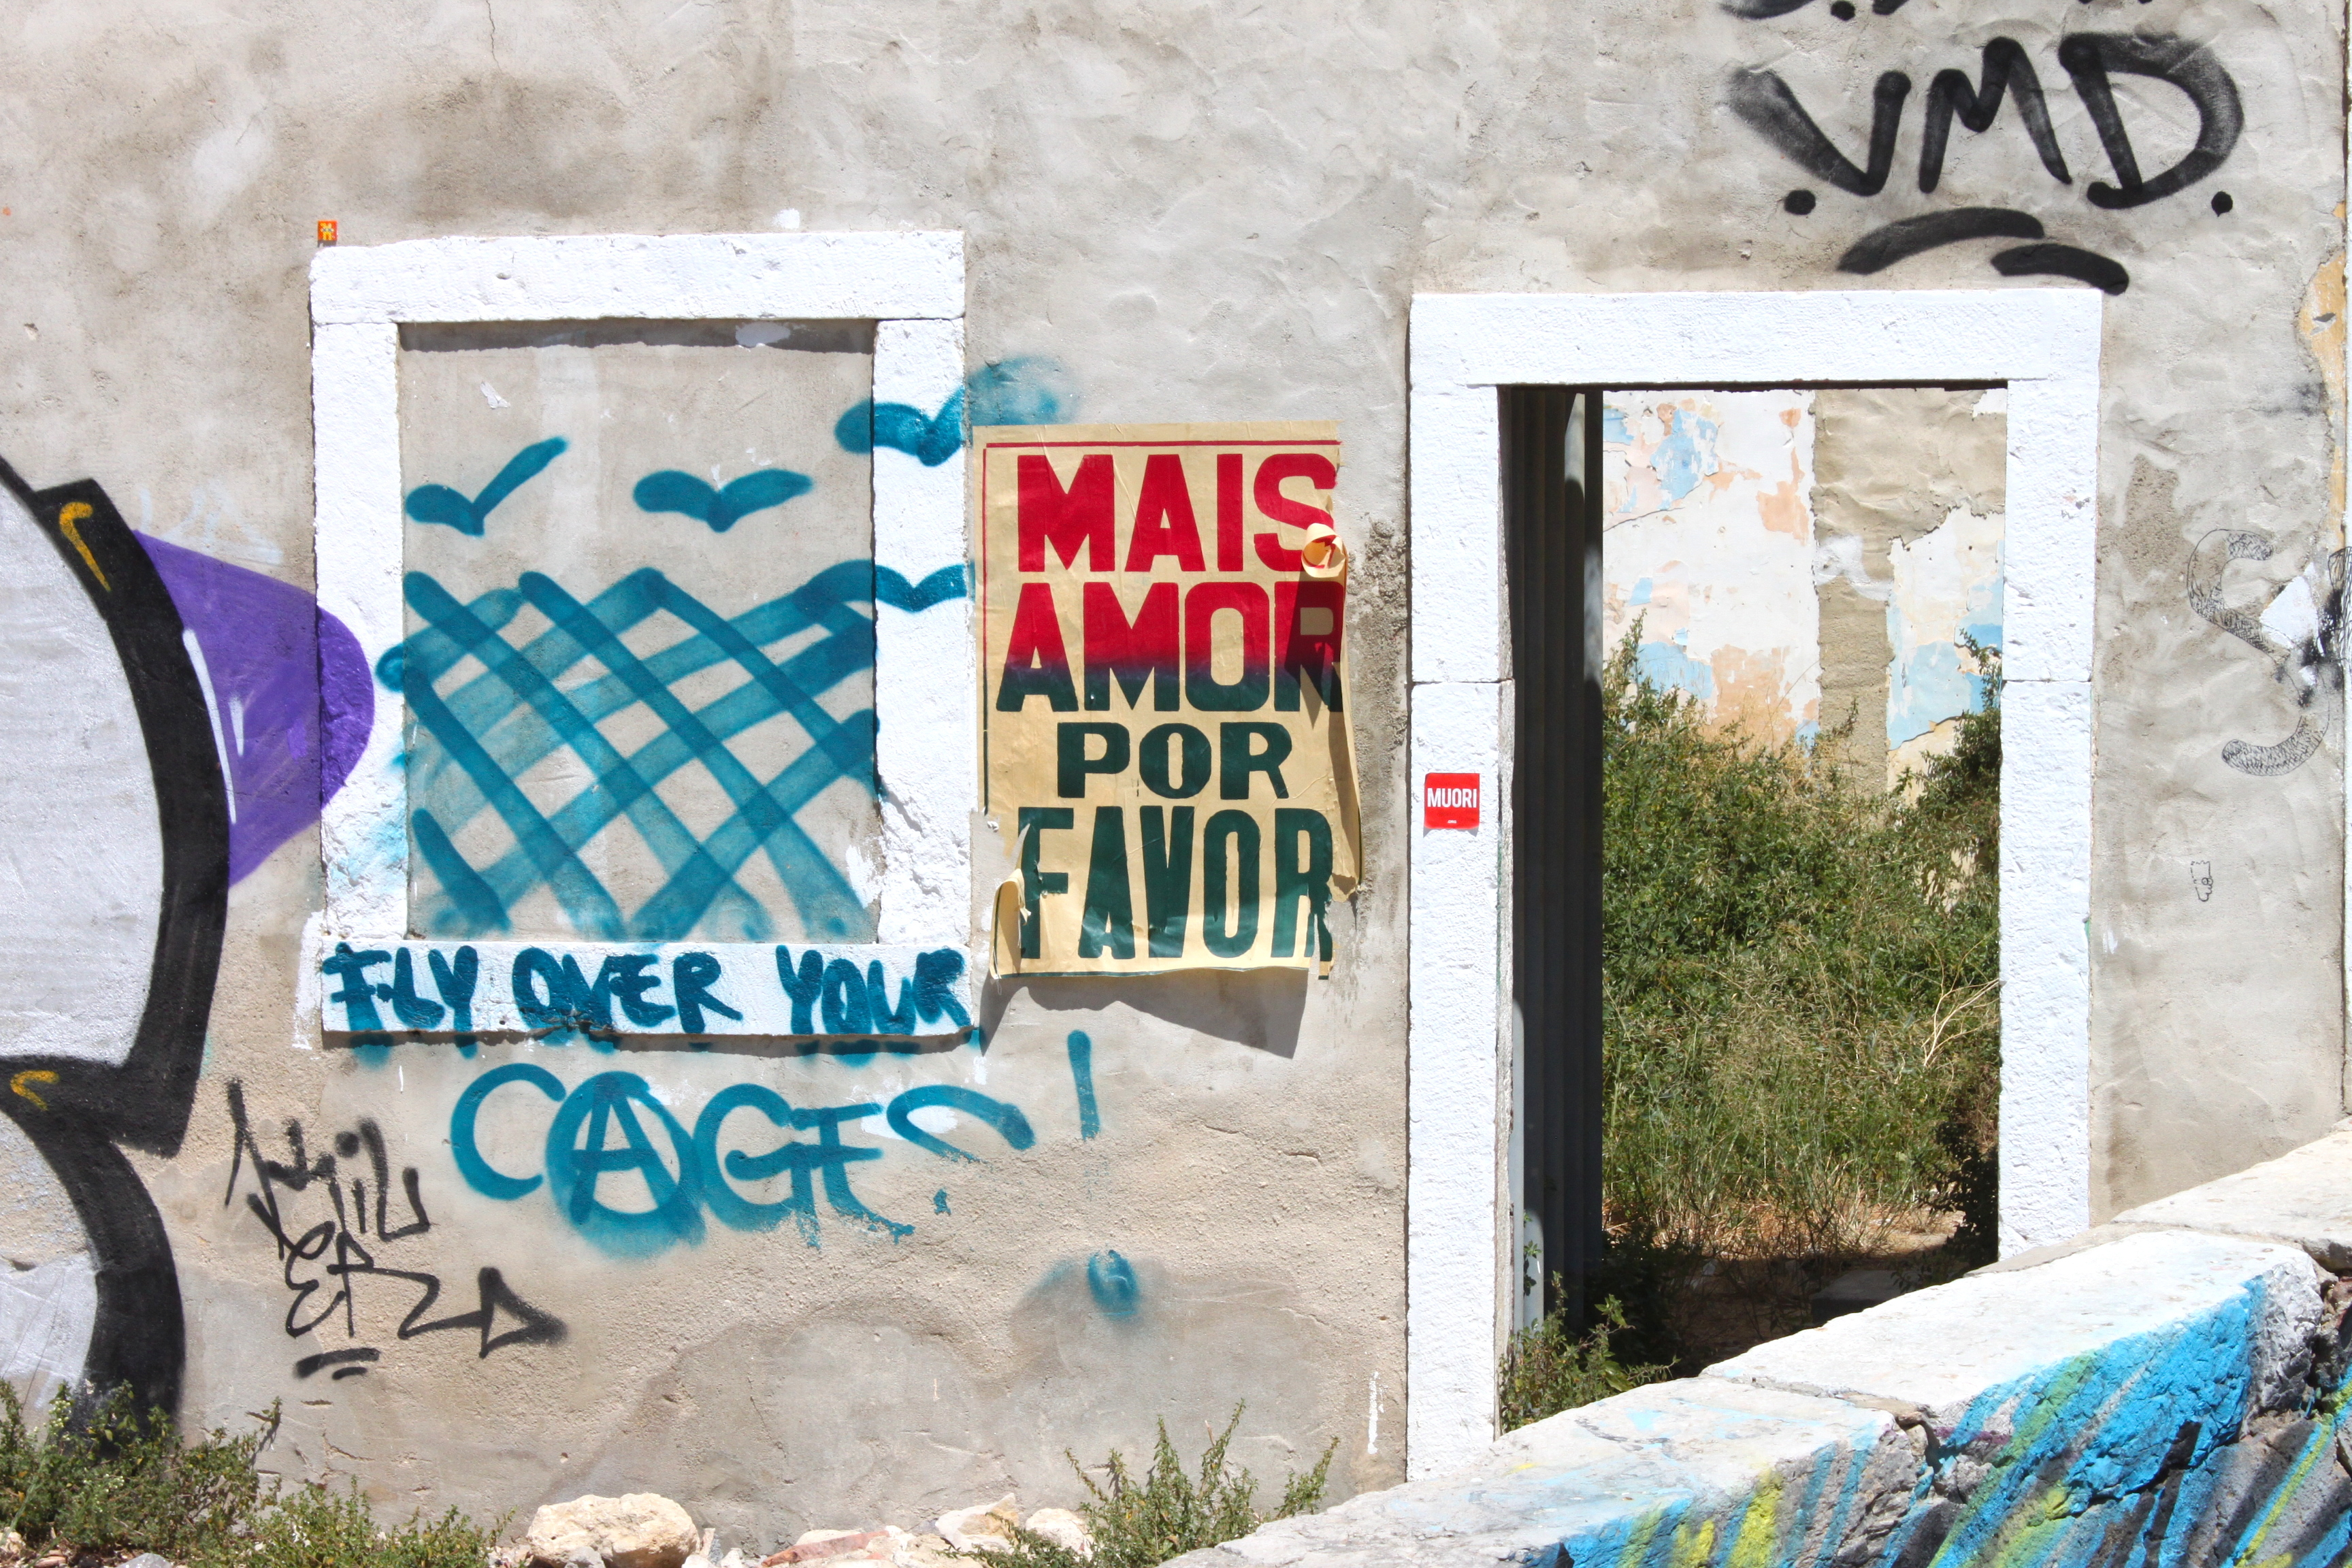 Mais amor, por favor. Fly over your cages.